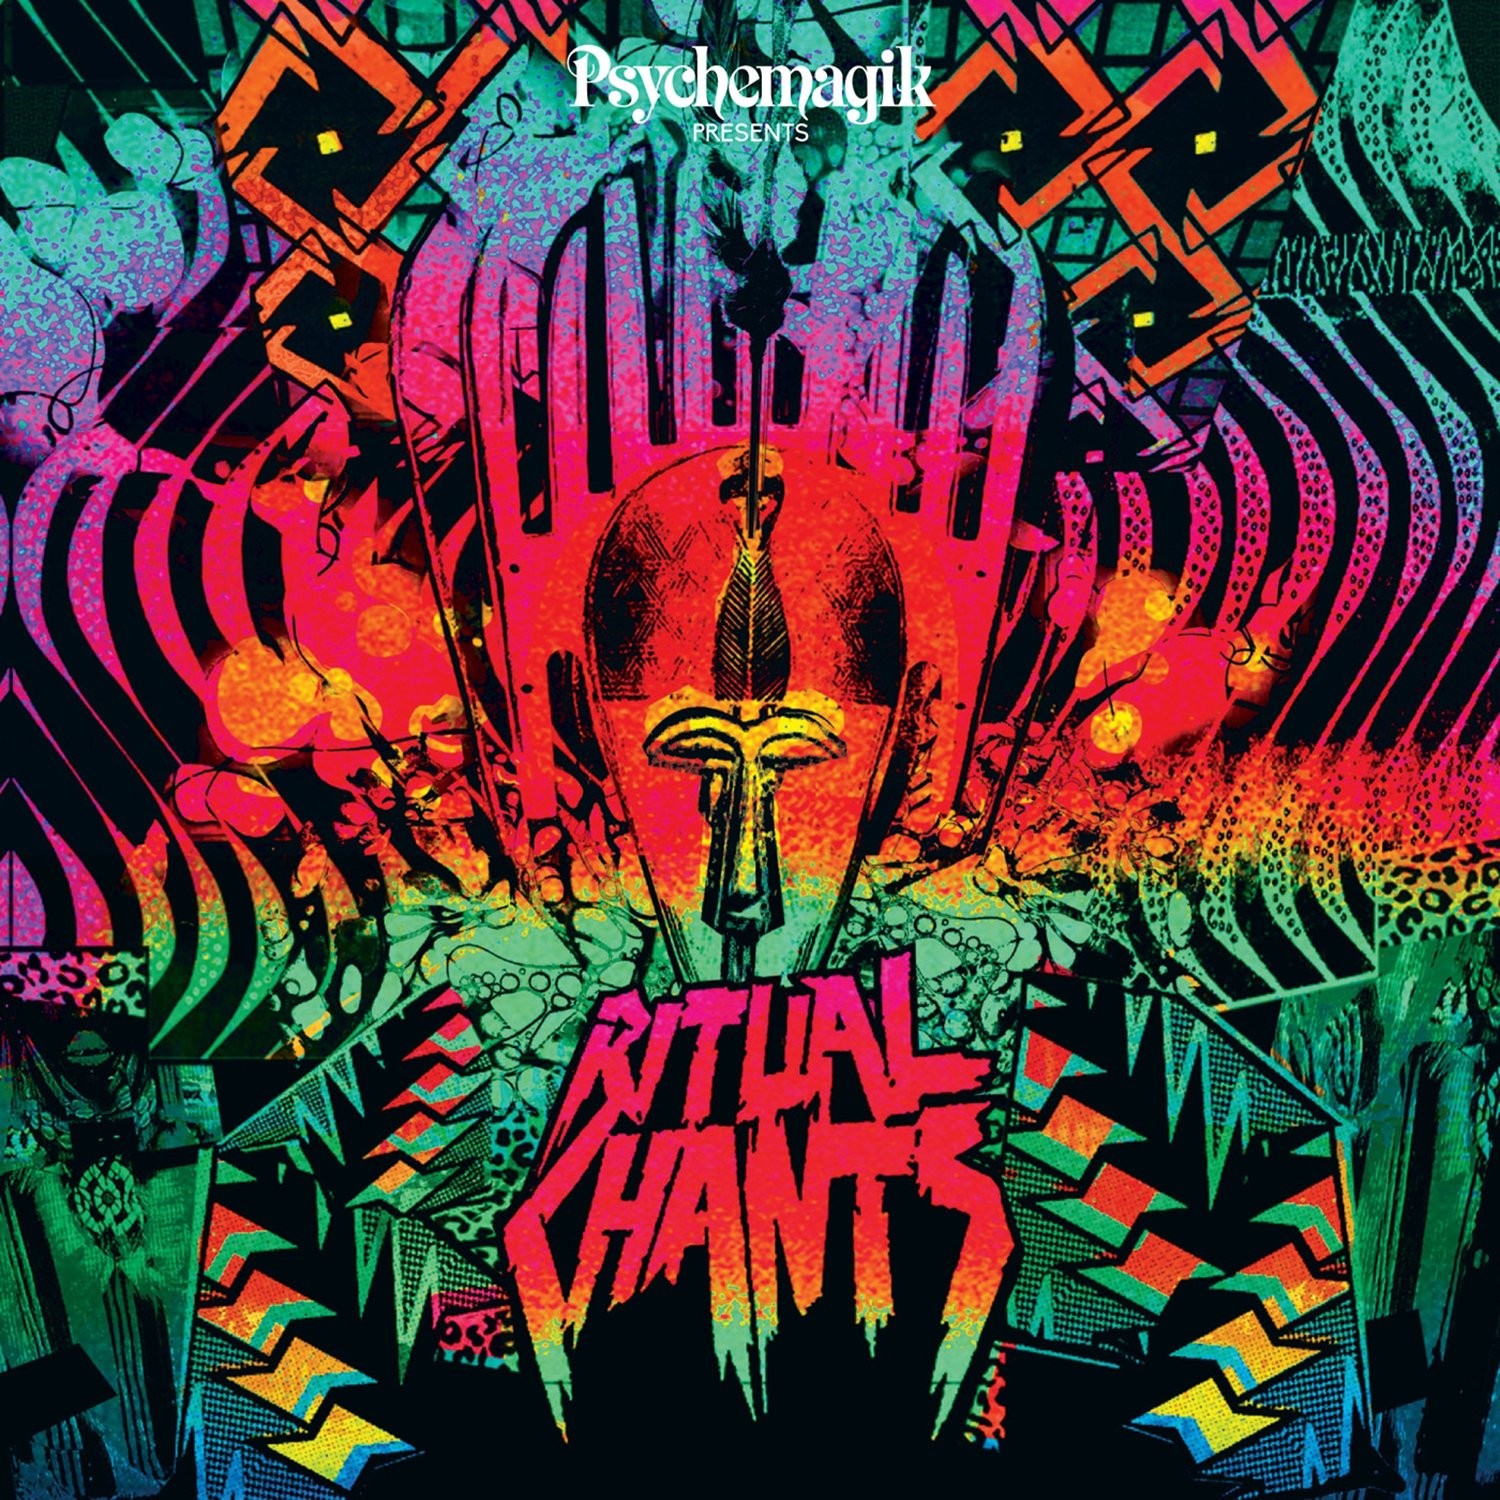 VA-Psychemagik Presents Ritual Chants-3CD-FLAC-2016-Mrflac Download